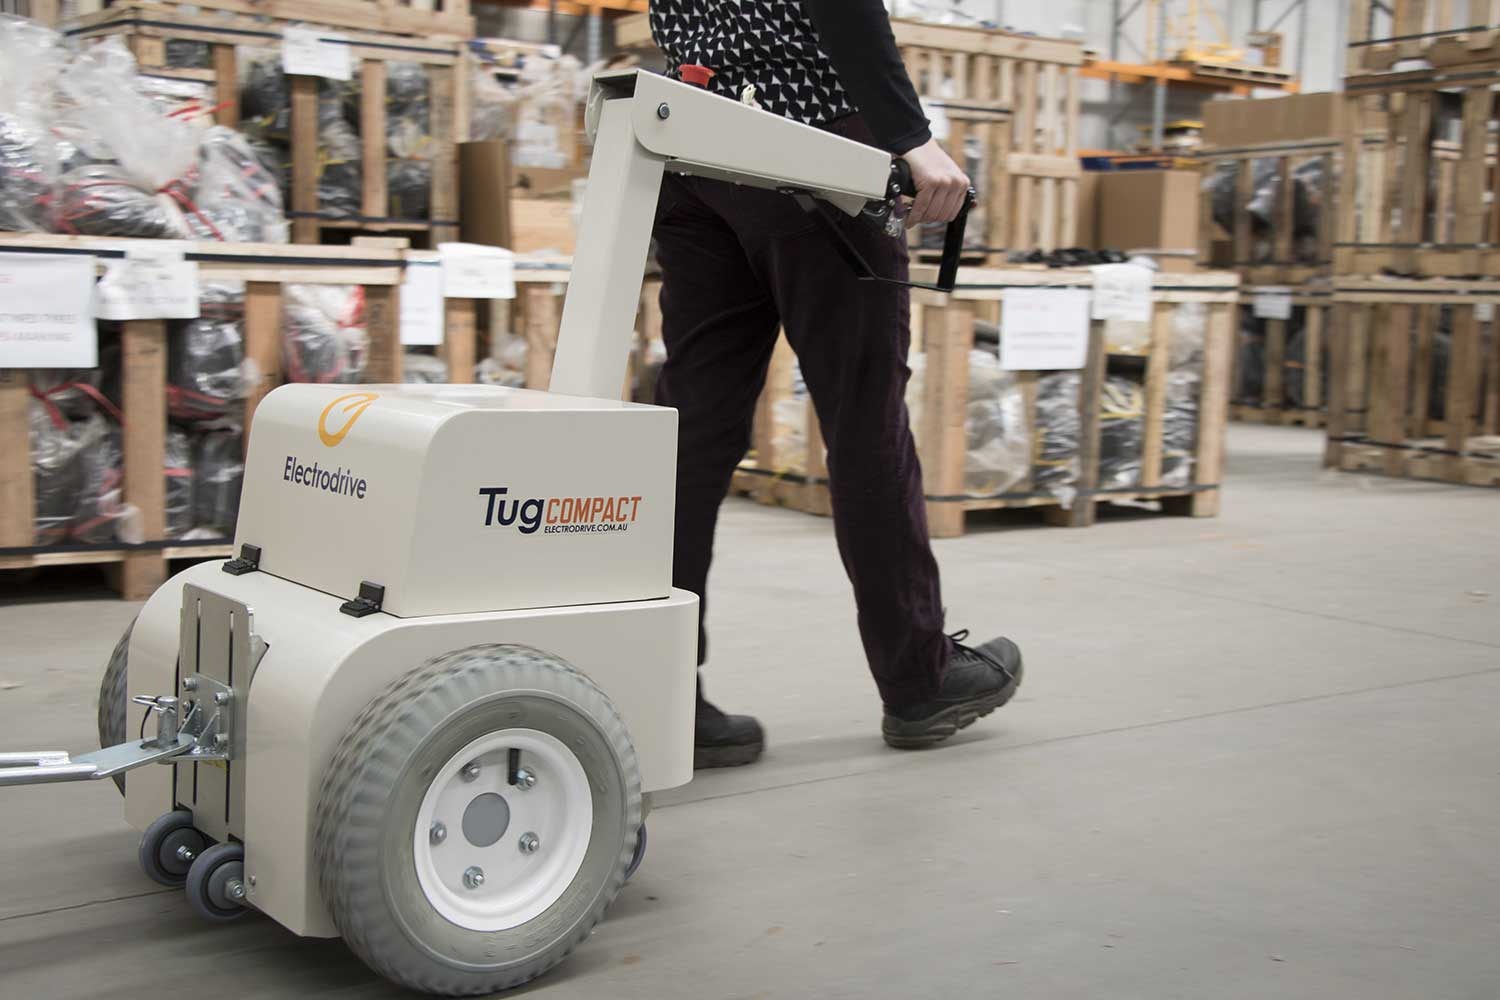 Electrodrive's Tug Compact towing heavy boxes in a warehouse